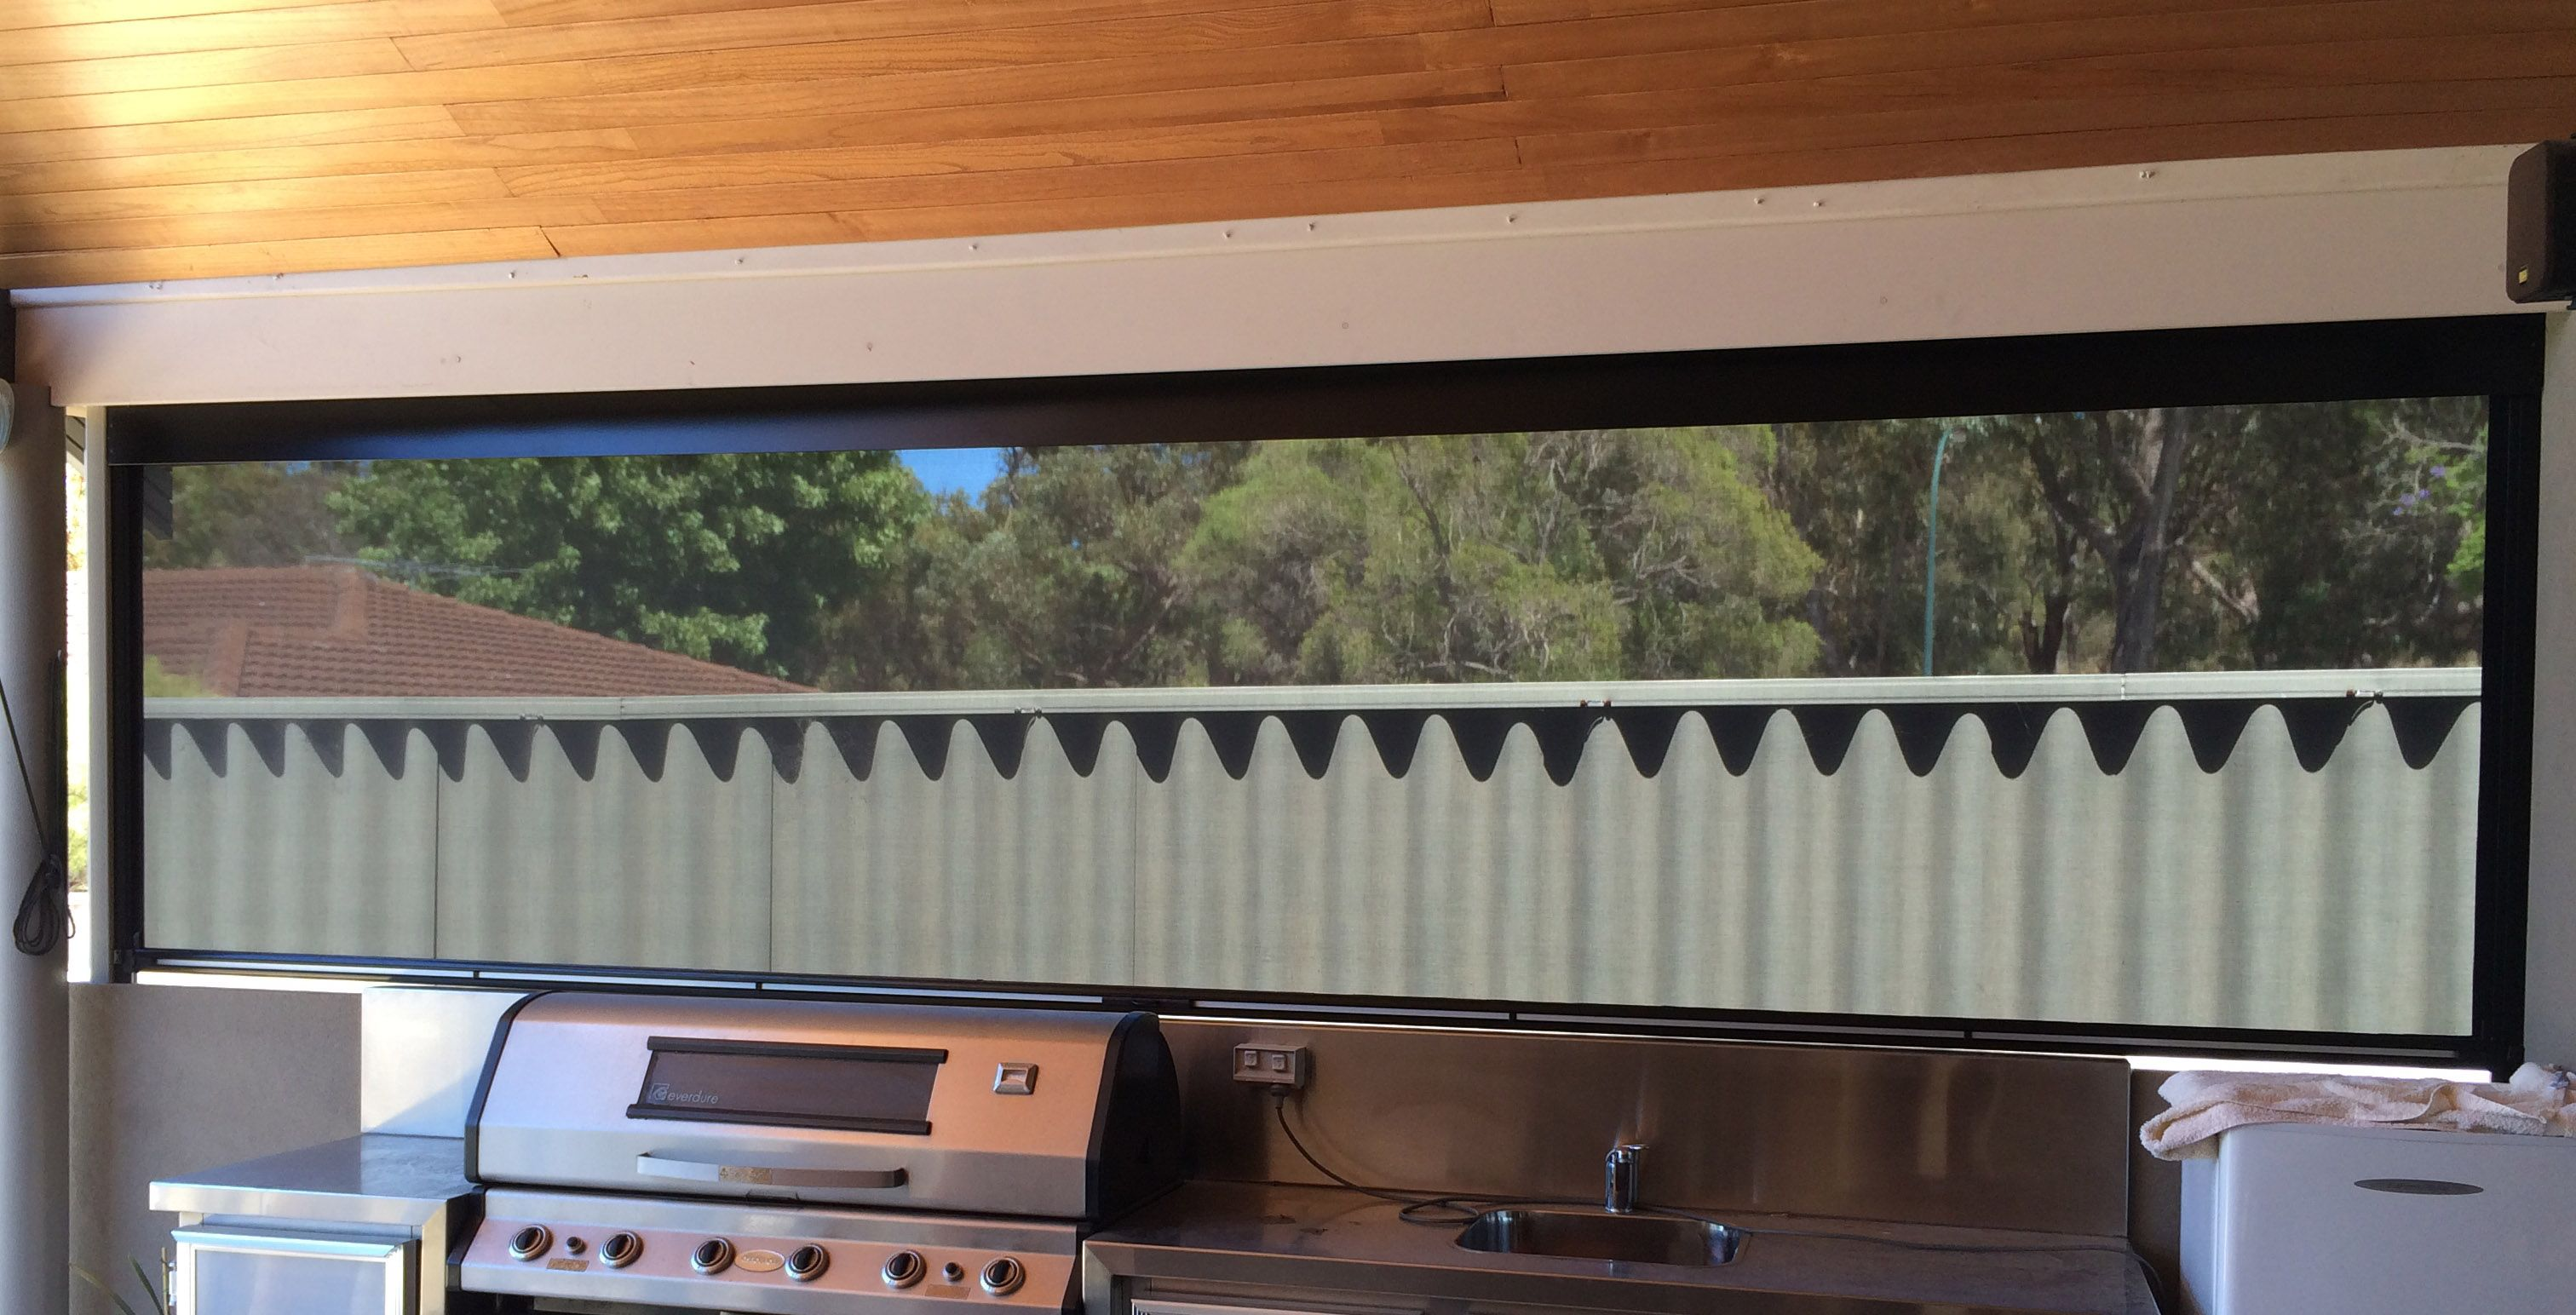 Roller blind covering an outdoor BBQ patio area. | Outdoor Blinds ...